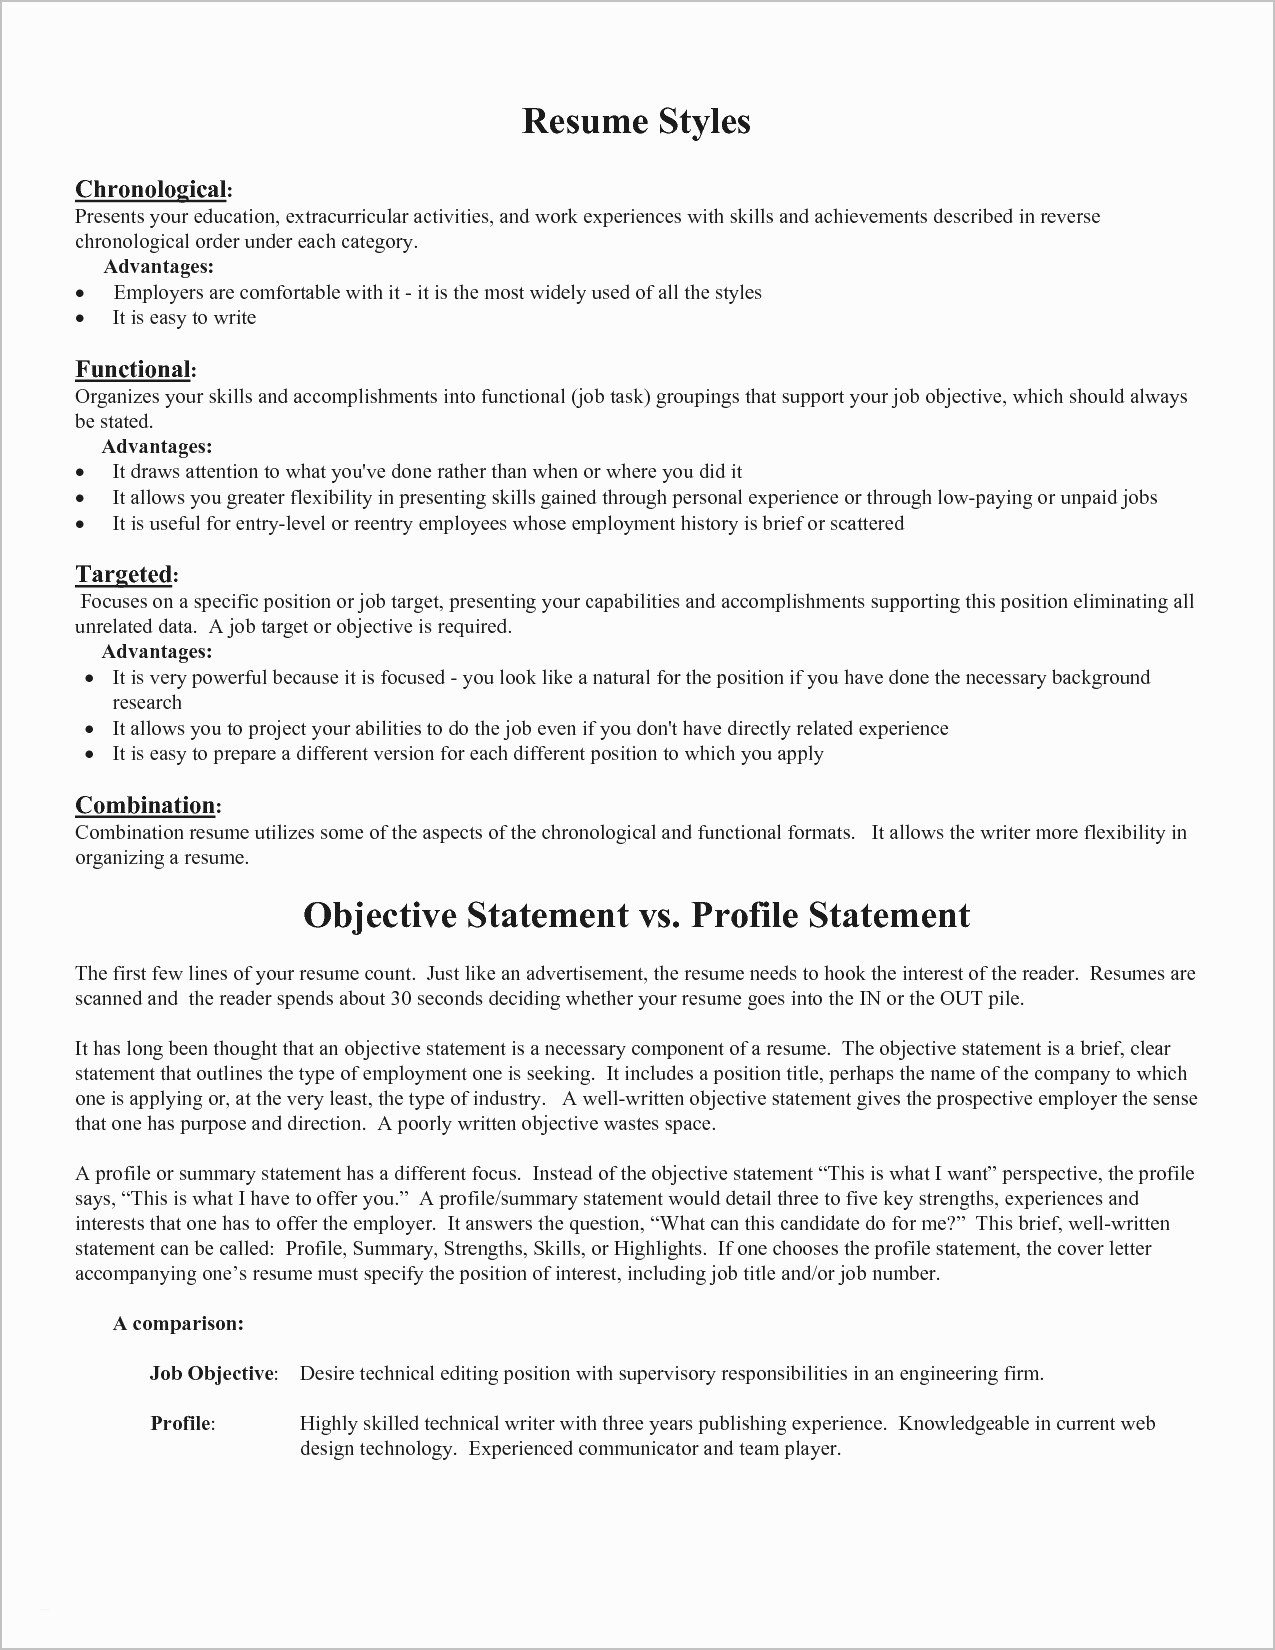 Stay at Home Mom Job Description for Resume - Bination Resume Template for Stay at Home Mom